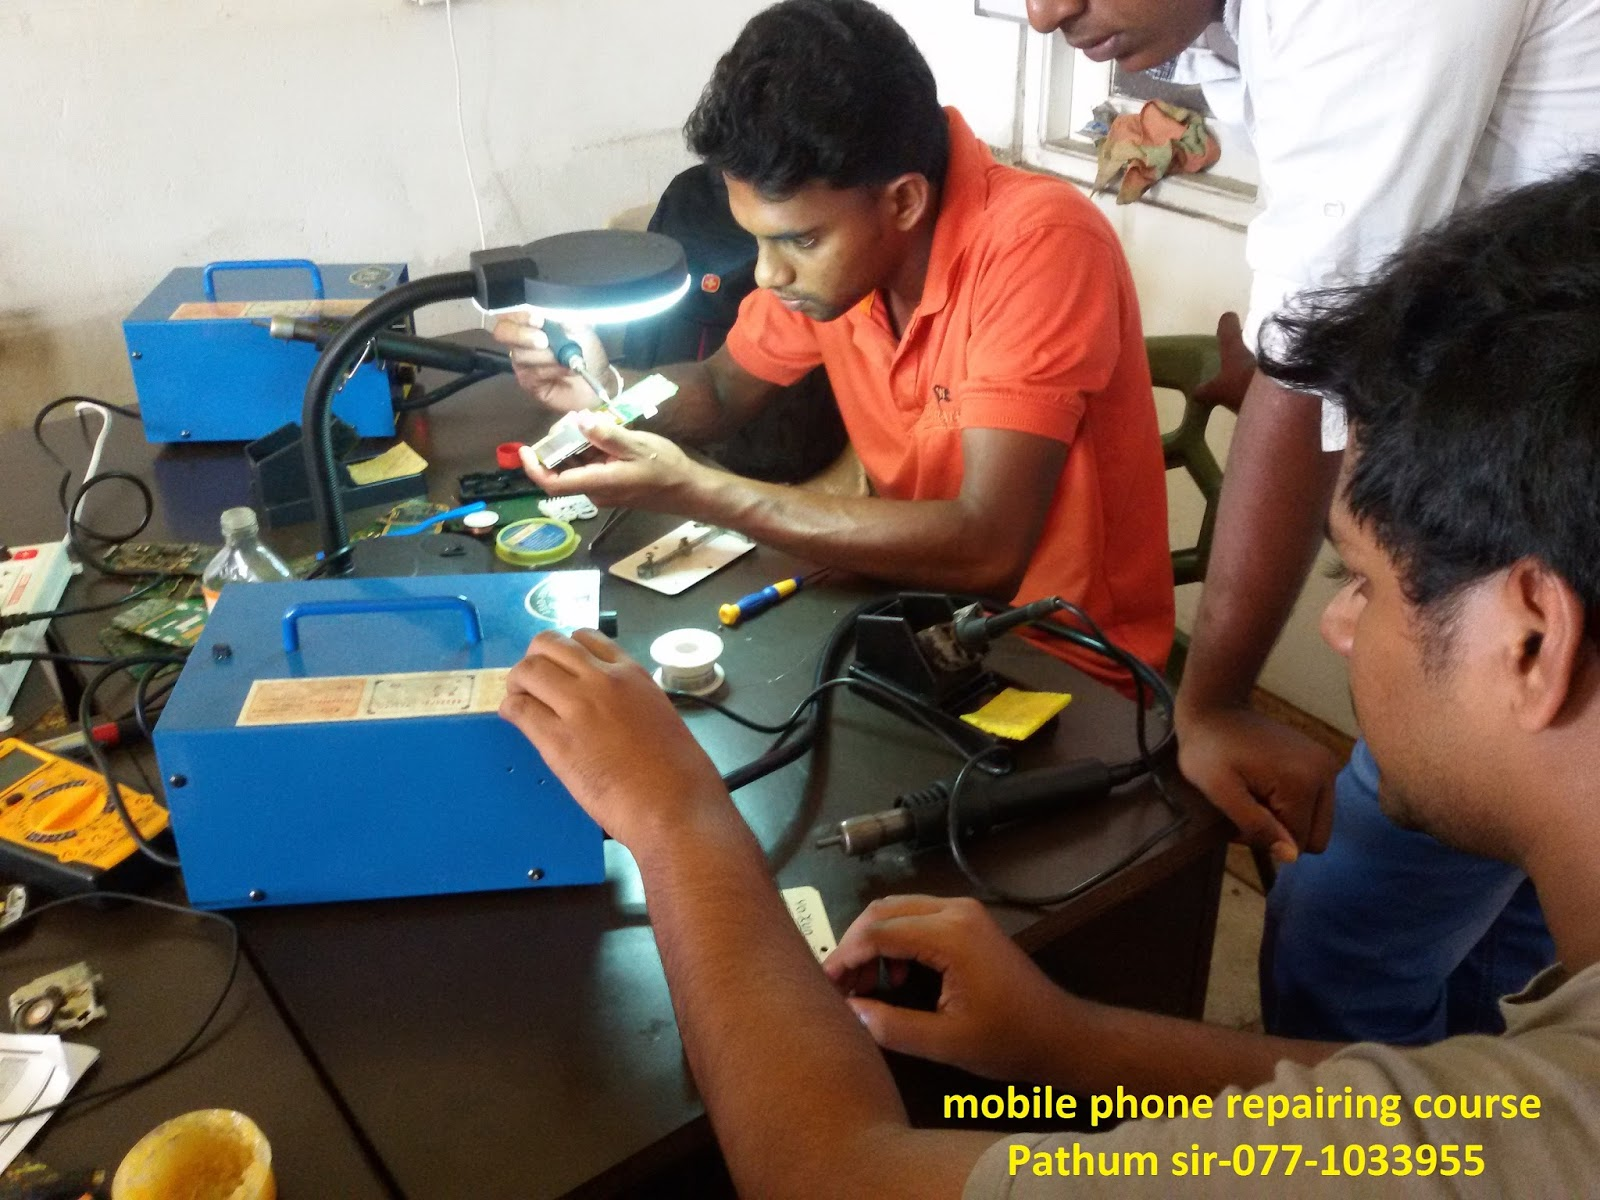 mobile phone coursework Prizm institute conducts online cell phone repair training course for people who can't attend any cellular school learn how to fix apple iphones and other smartphones.